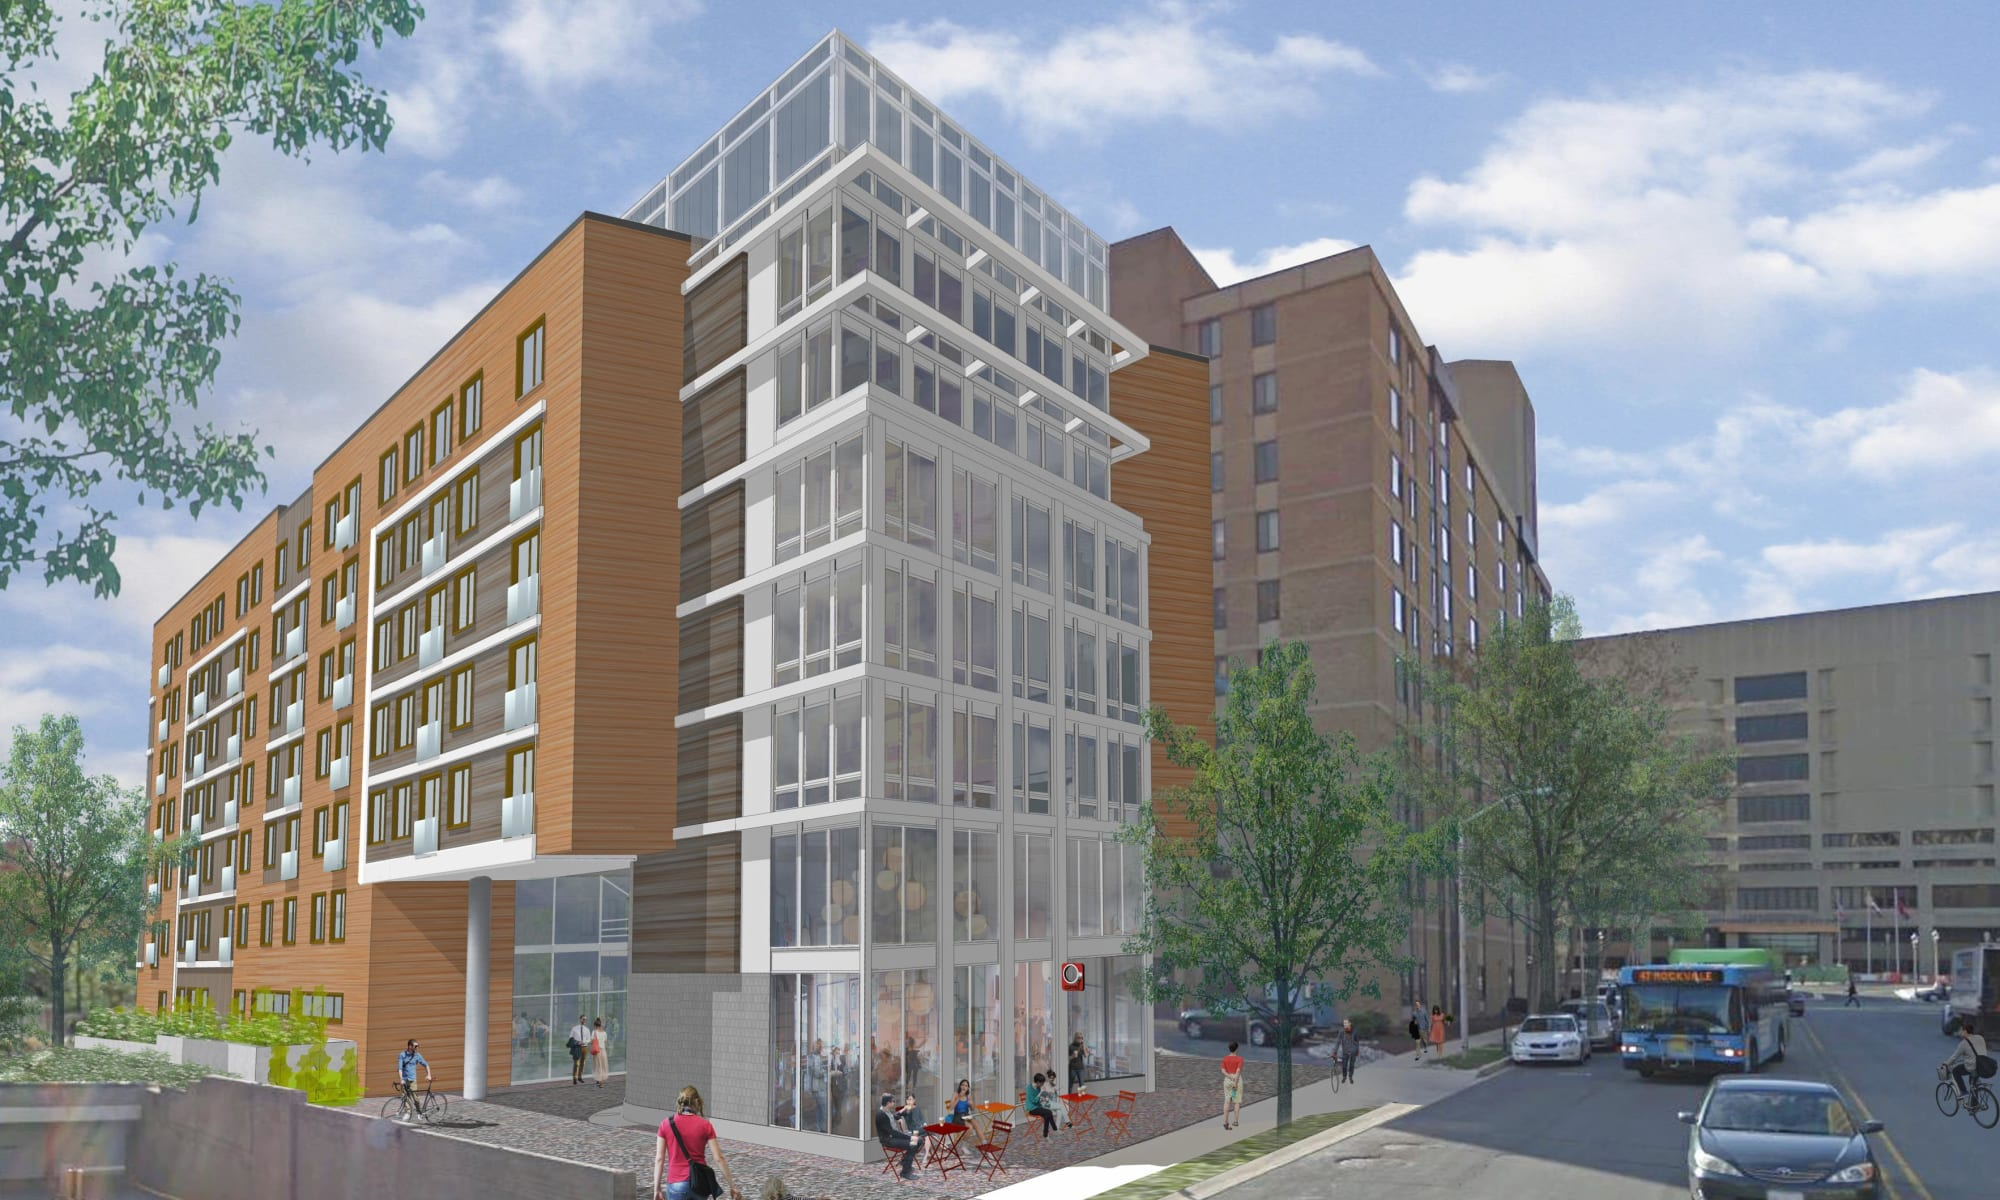 Main Street Apartments in Rockville, Maryland